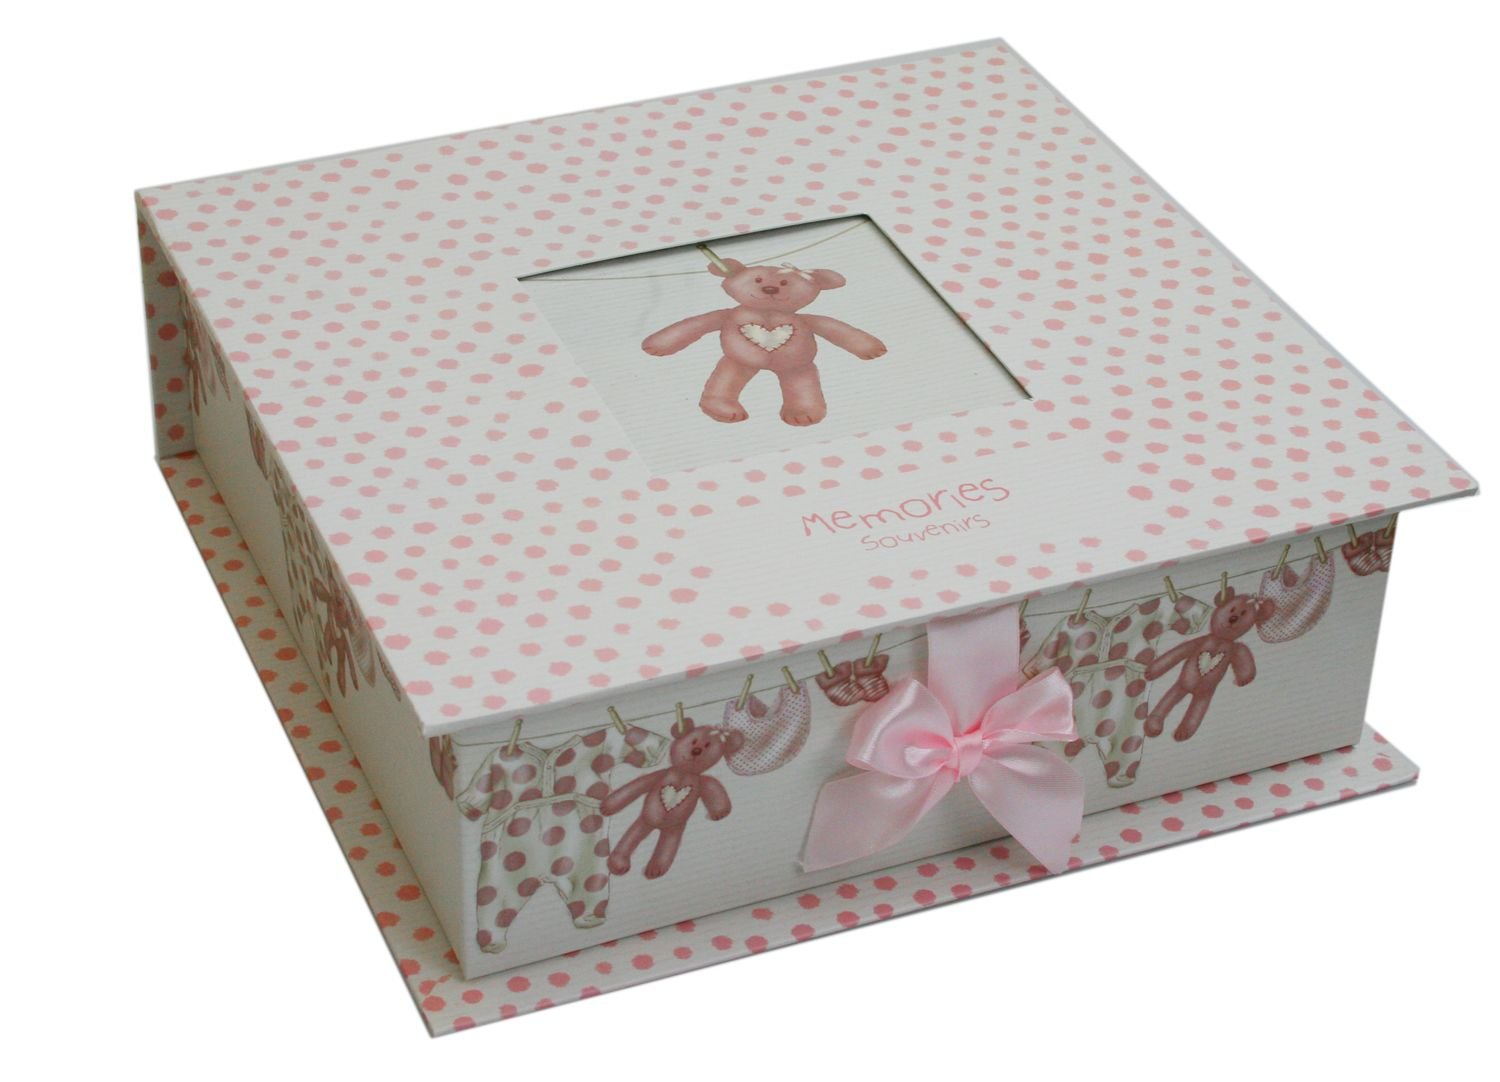 New Baby Keepsake Memory Box ~ Pink Baby Girl Keepsake Storage Box Amazon.co.uk Kitchen u0026 Home  sc 1 st  Amazon UK : keepsake box baby - Aboutintivar.Com